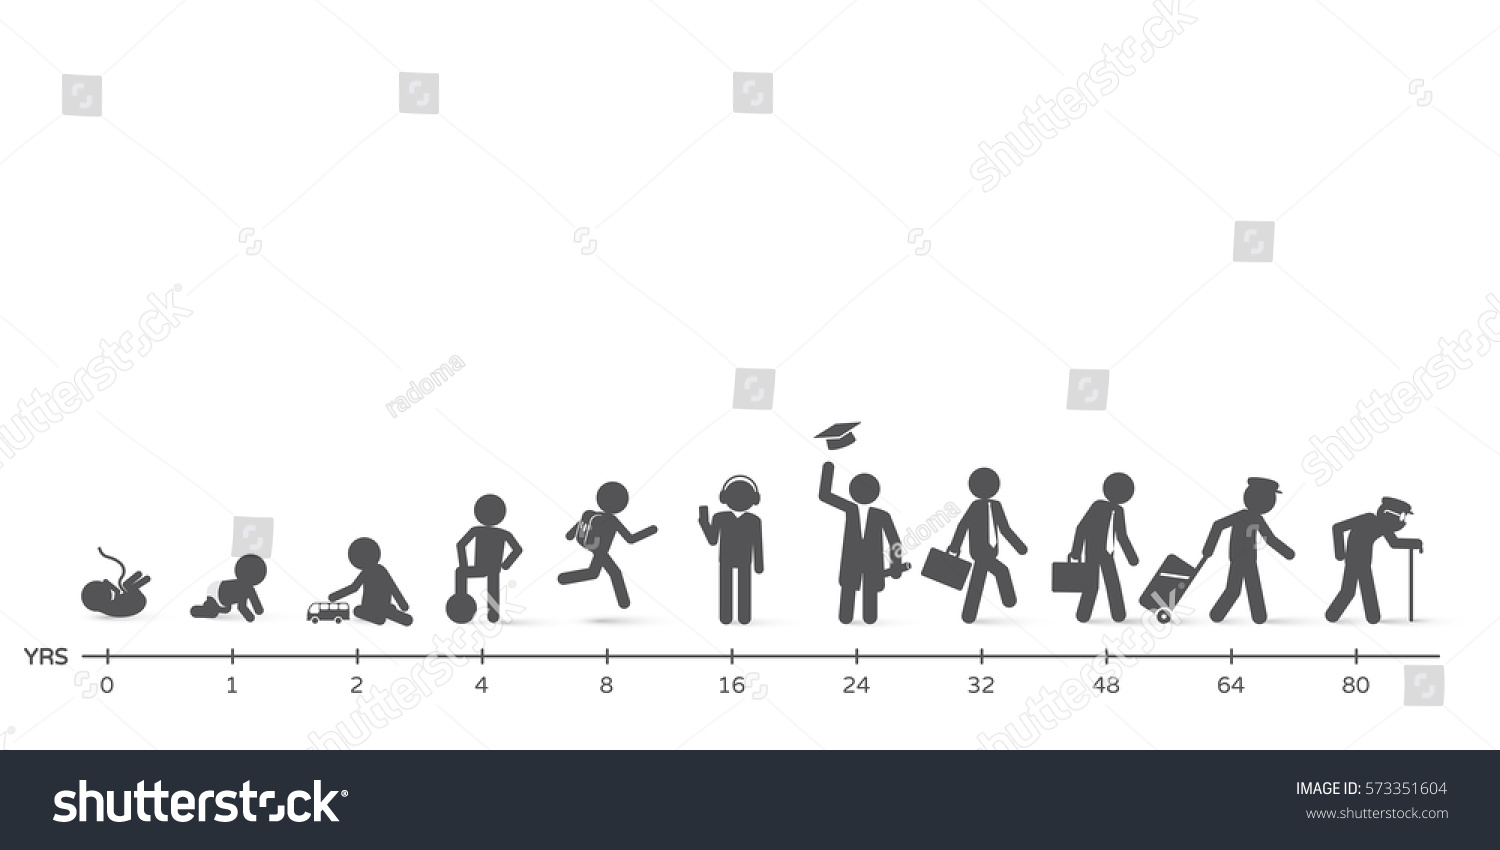 Human life cycle stages ages - photo#39